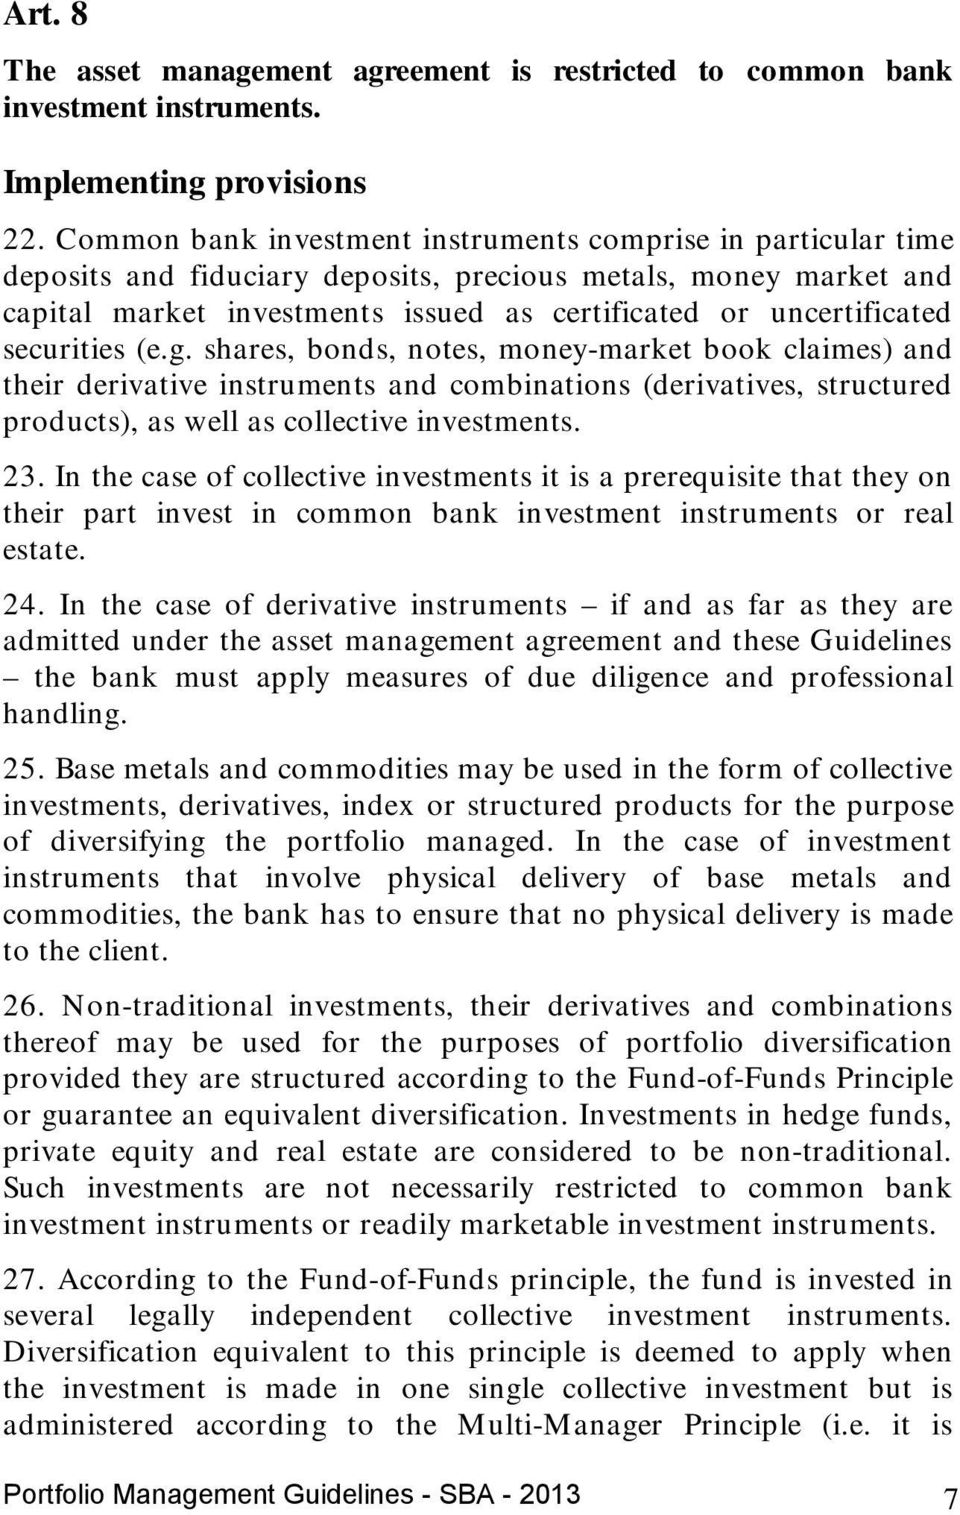 securities (e.g. shares, bonds, notes, money-market book claimes) and their derivative instruments and combinations (derivatives, structured products), as well as collective investments. 23.